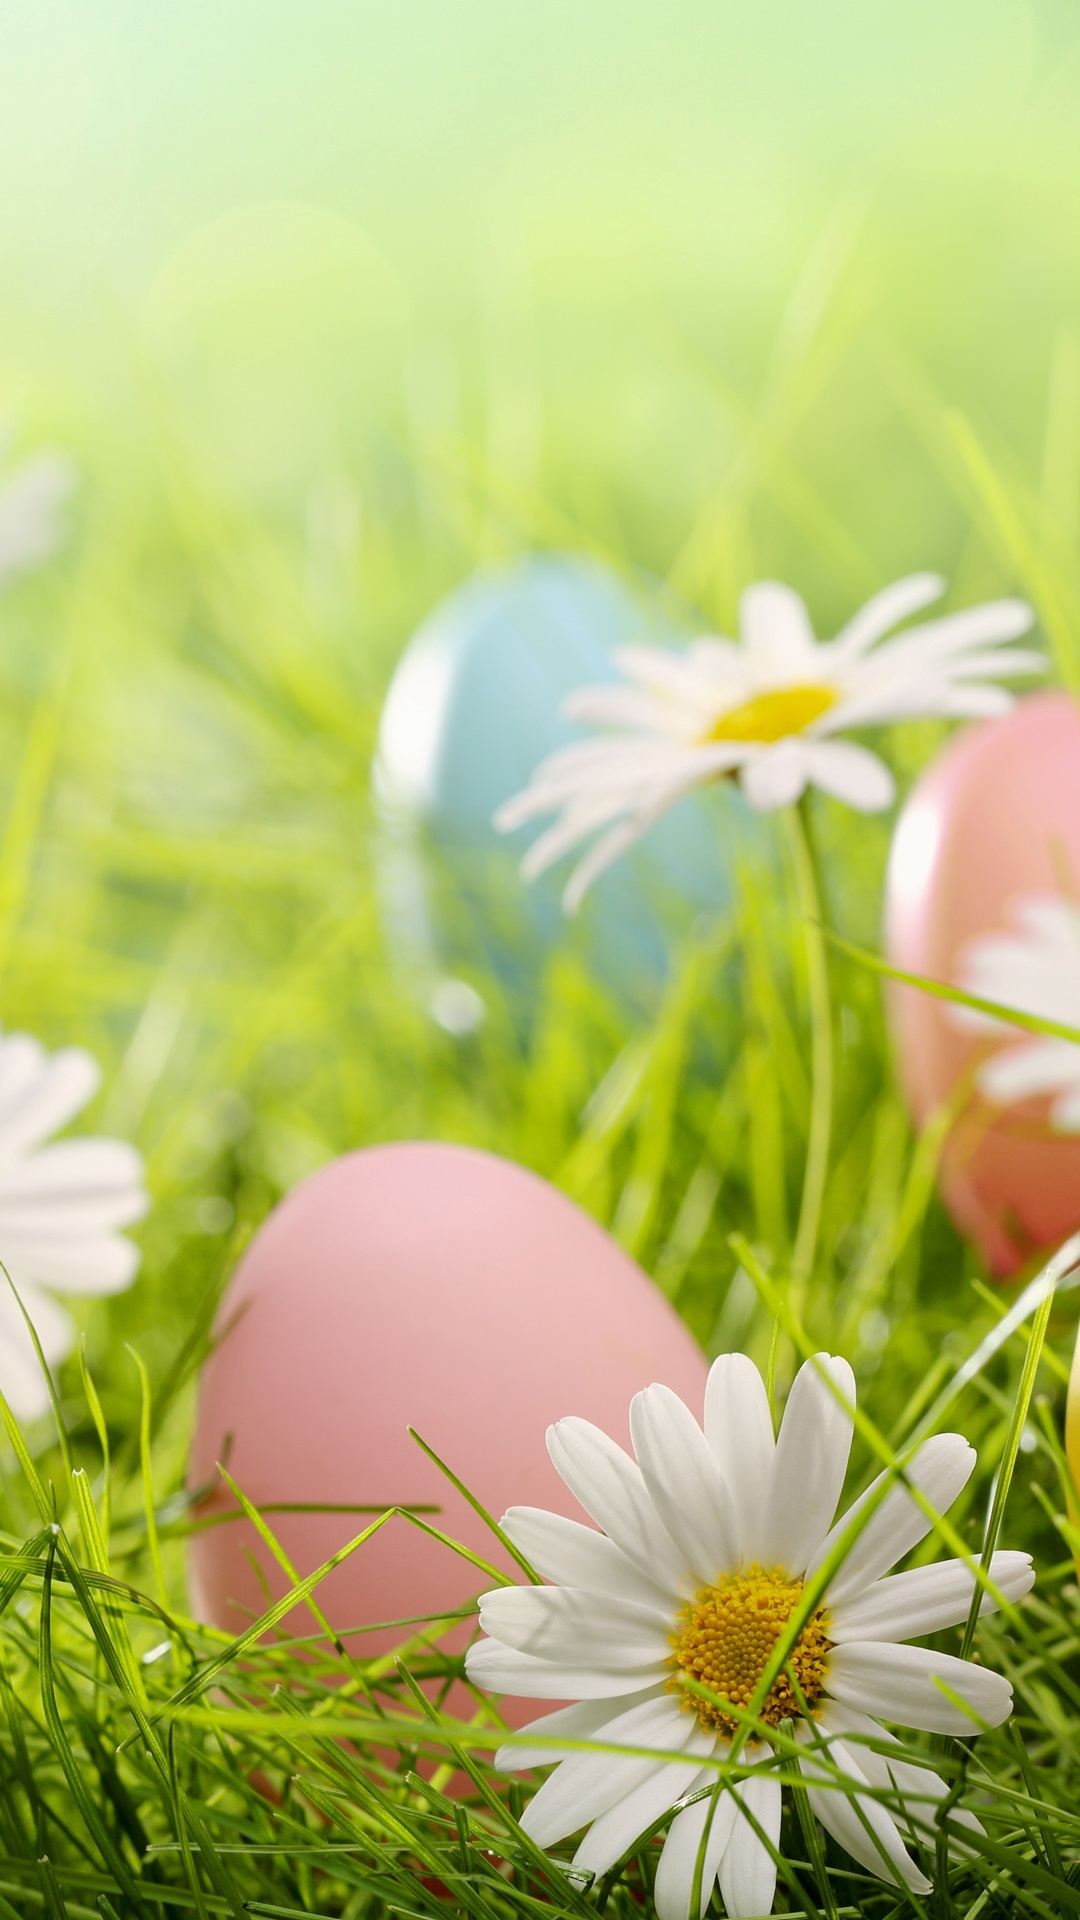 Easter Colorful Eggs Daisies Flowers Grass Iphone X 8 7 6 5 4